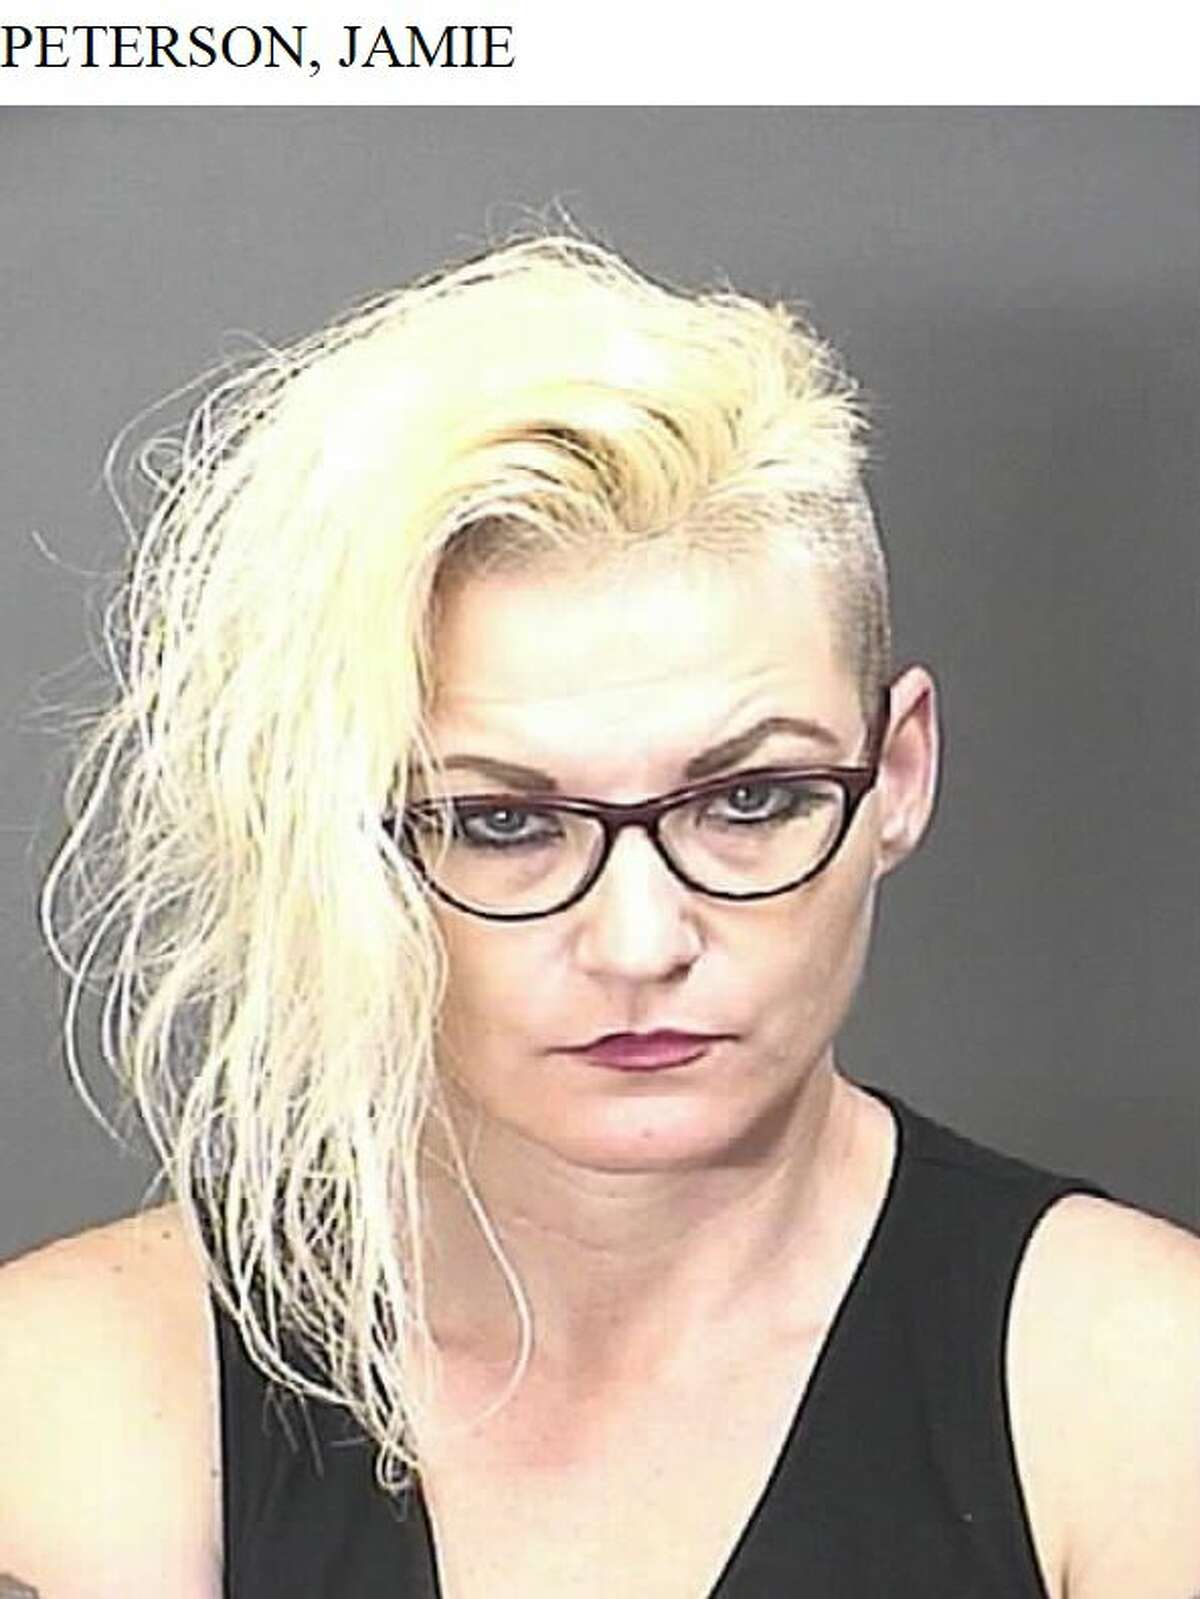 Jamie Peterson, 39, of Sugar Land is charged with felony possession of a controlled substance in lieu of a prostitution charge after a Feb. 6 prostitution sting at a Baytown hotel.